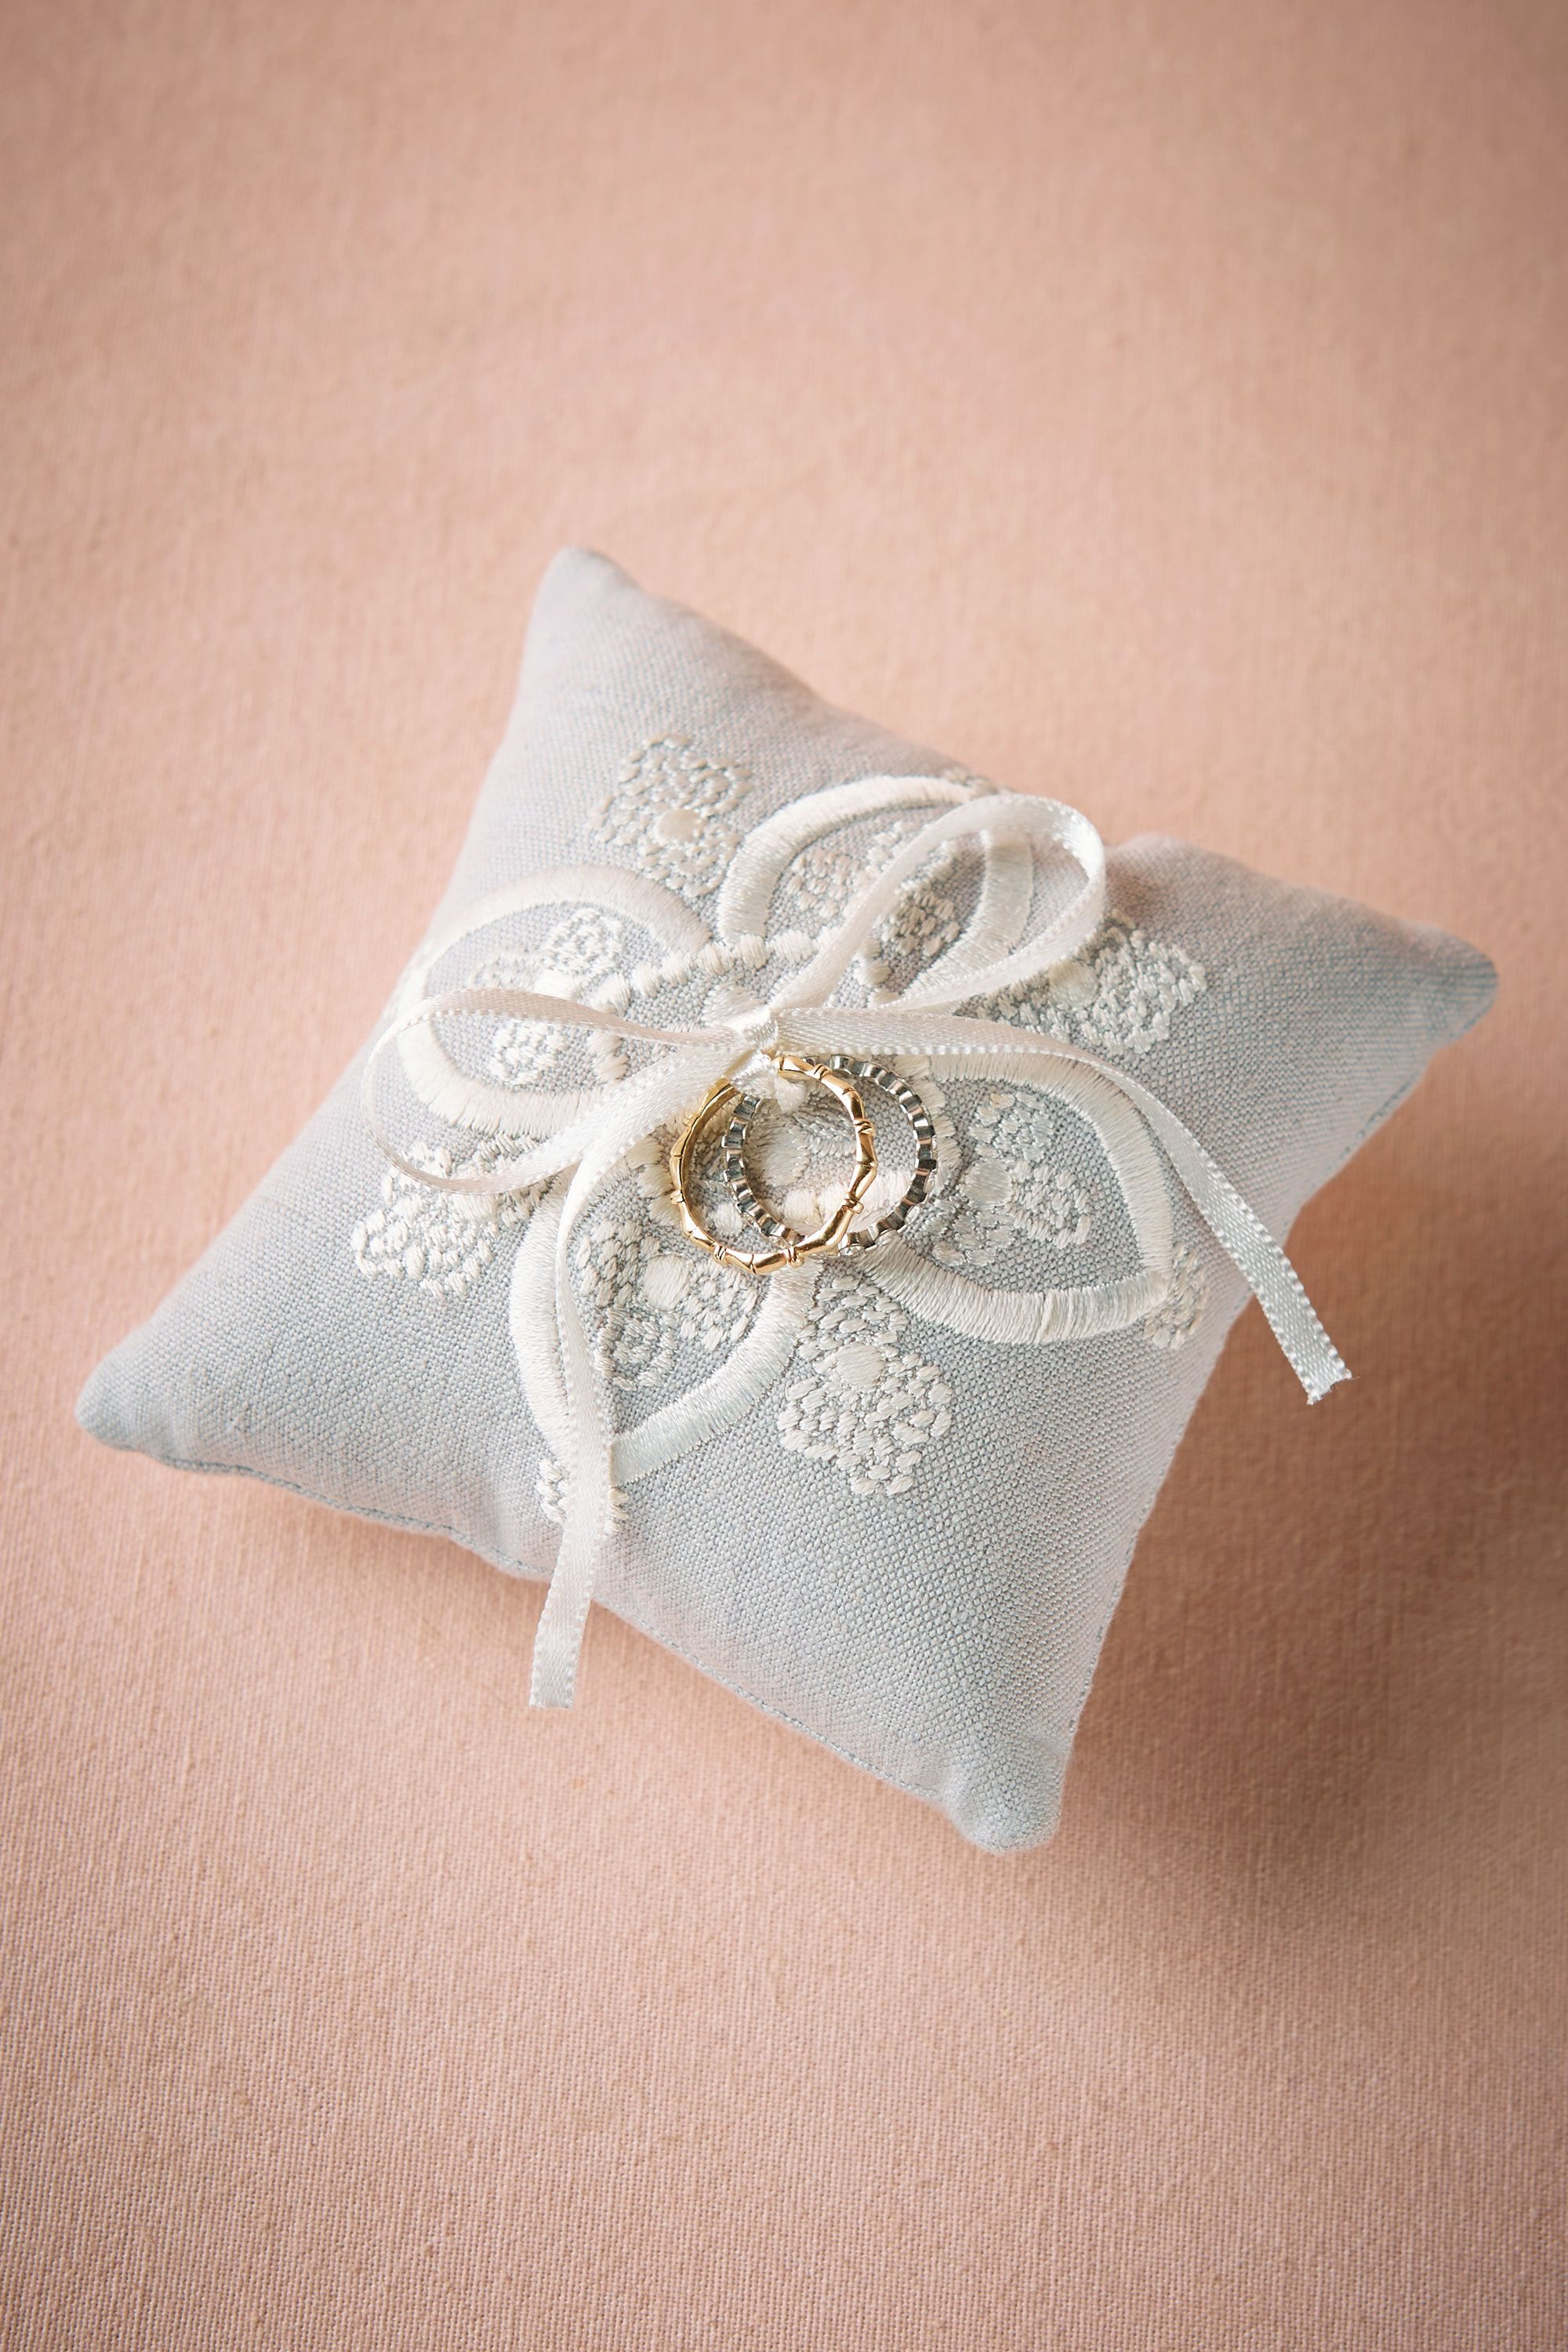 wedding with madeheart handmade accessories dsc fabric ring beads product and en bows golden pillow decorative